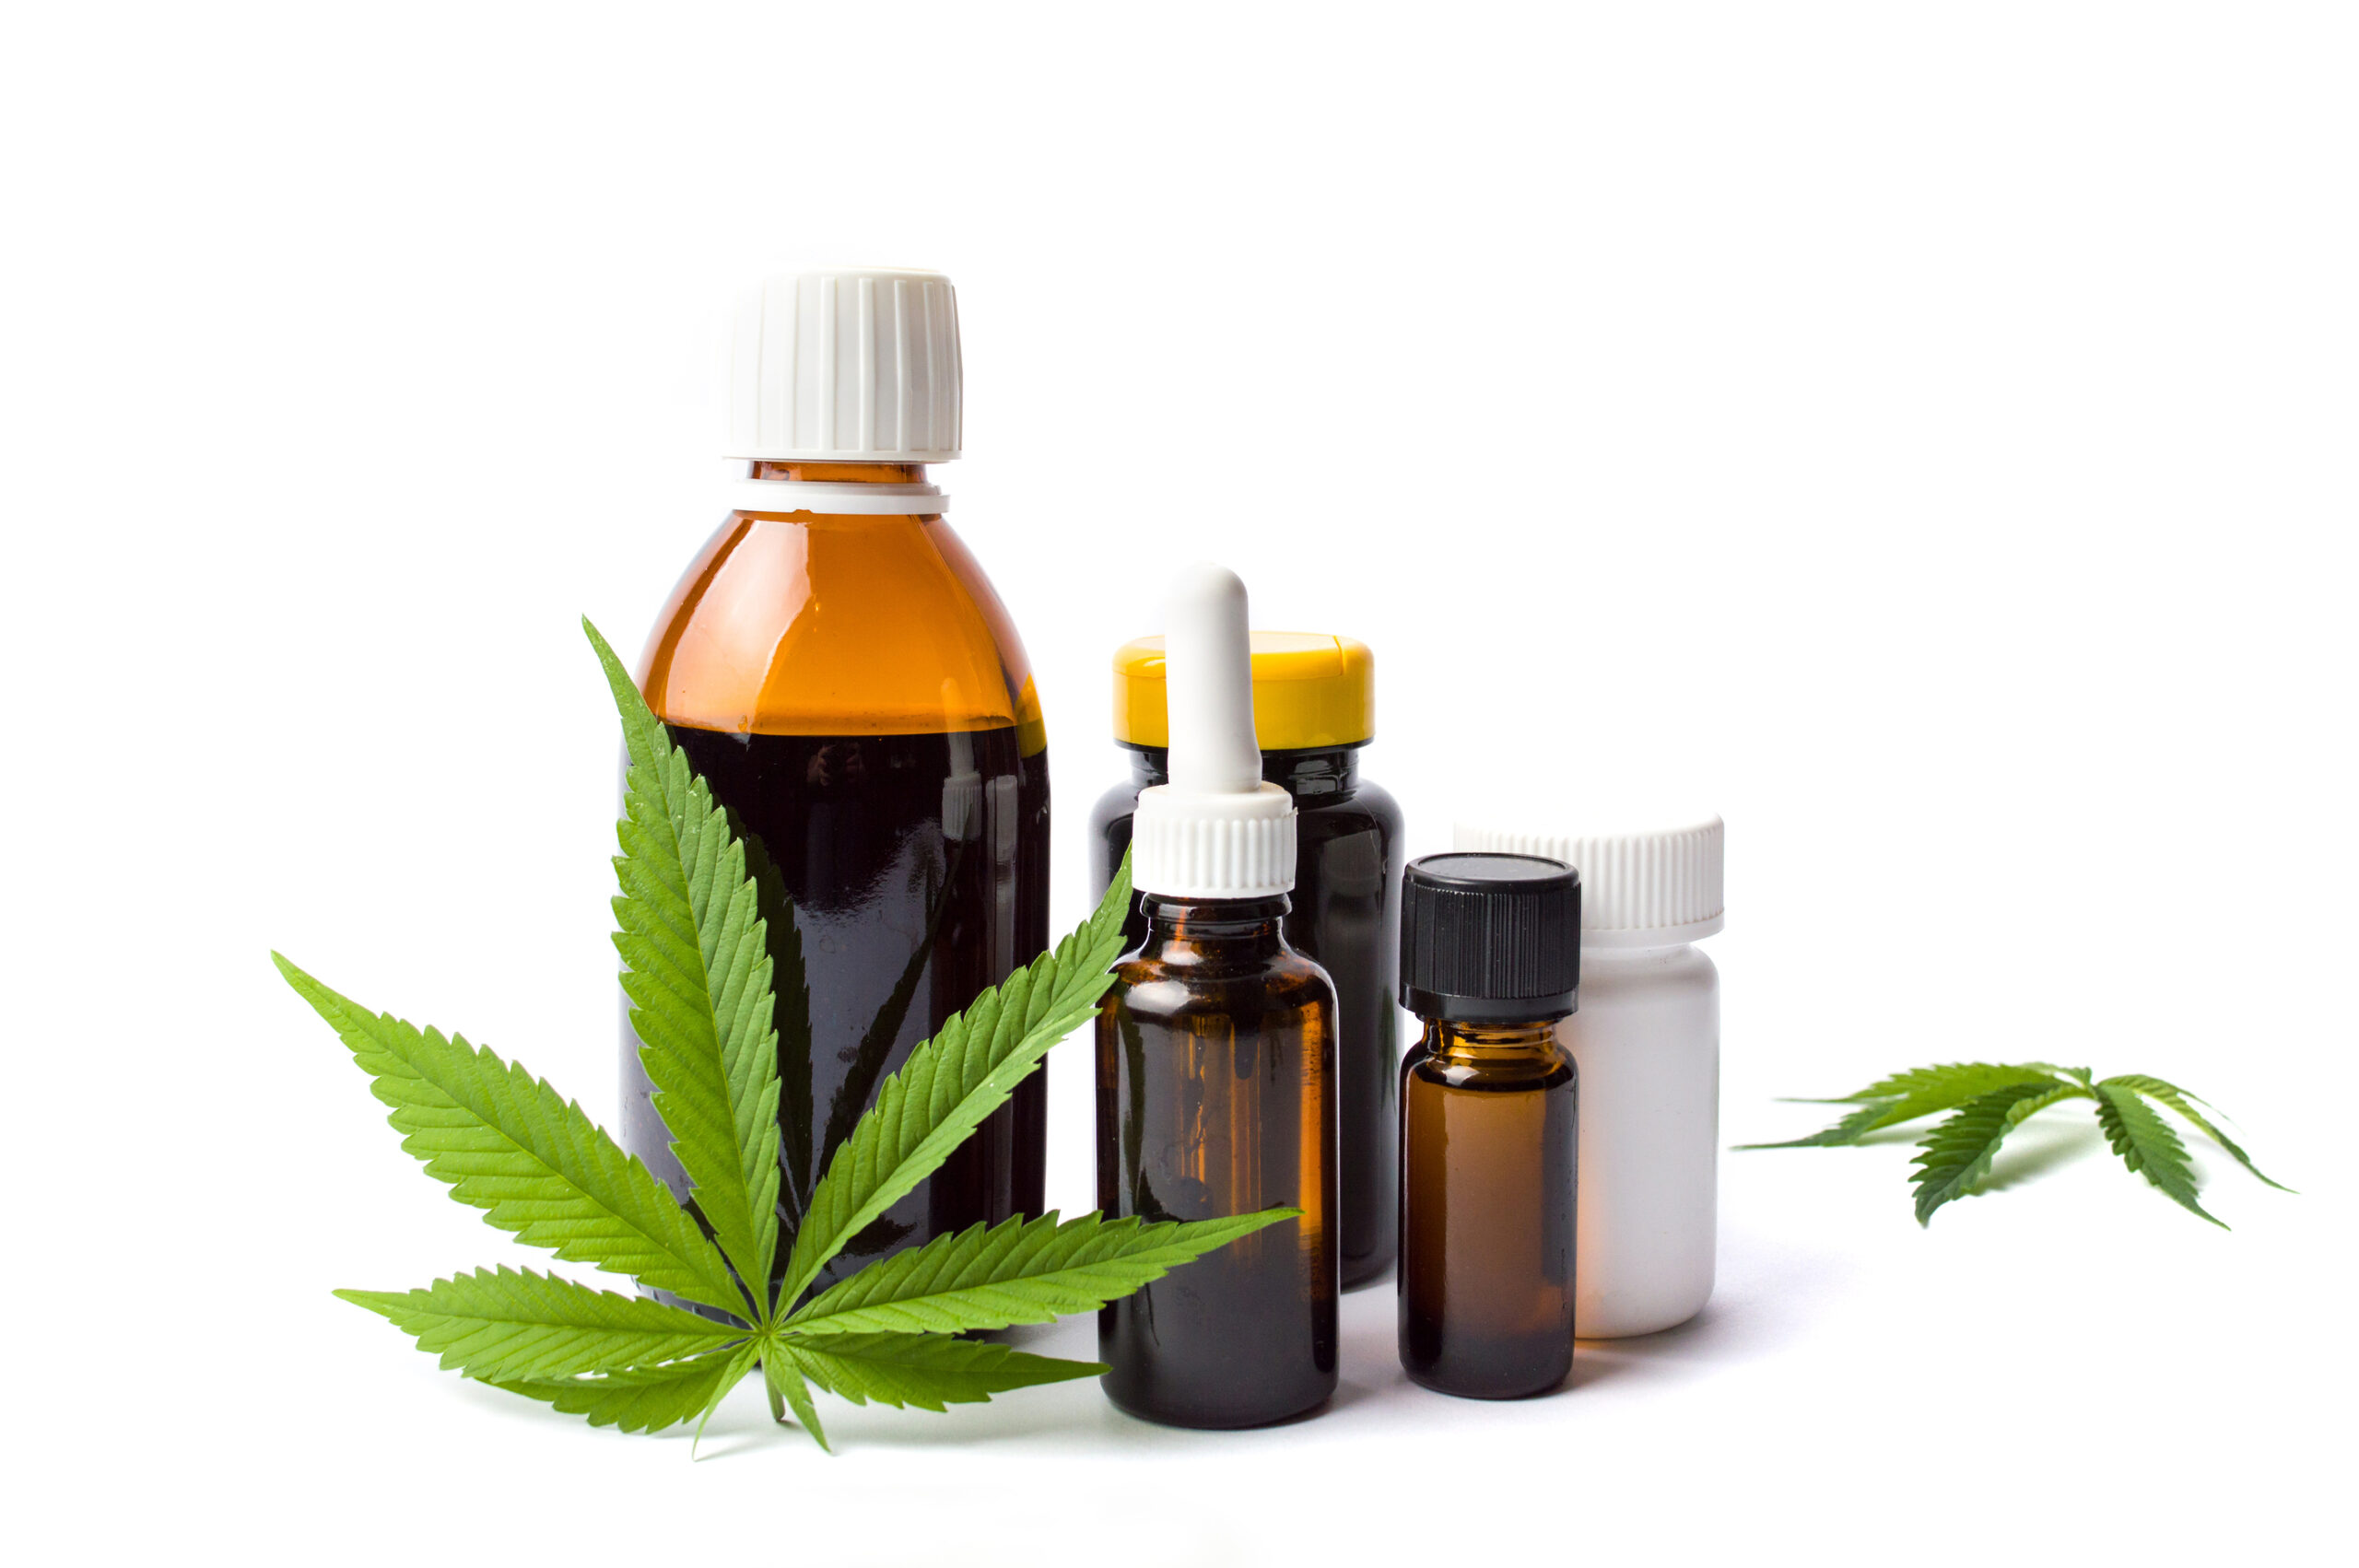 Using Medical Marijuana For Pain Relief In Florida